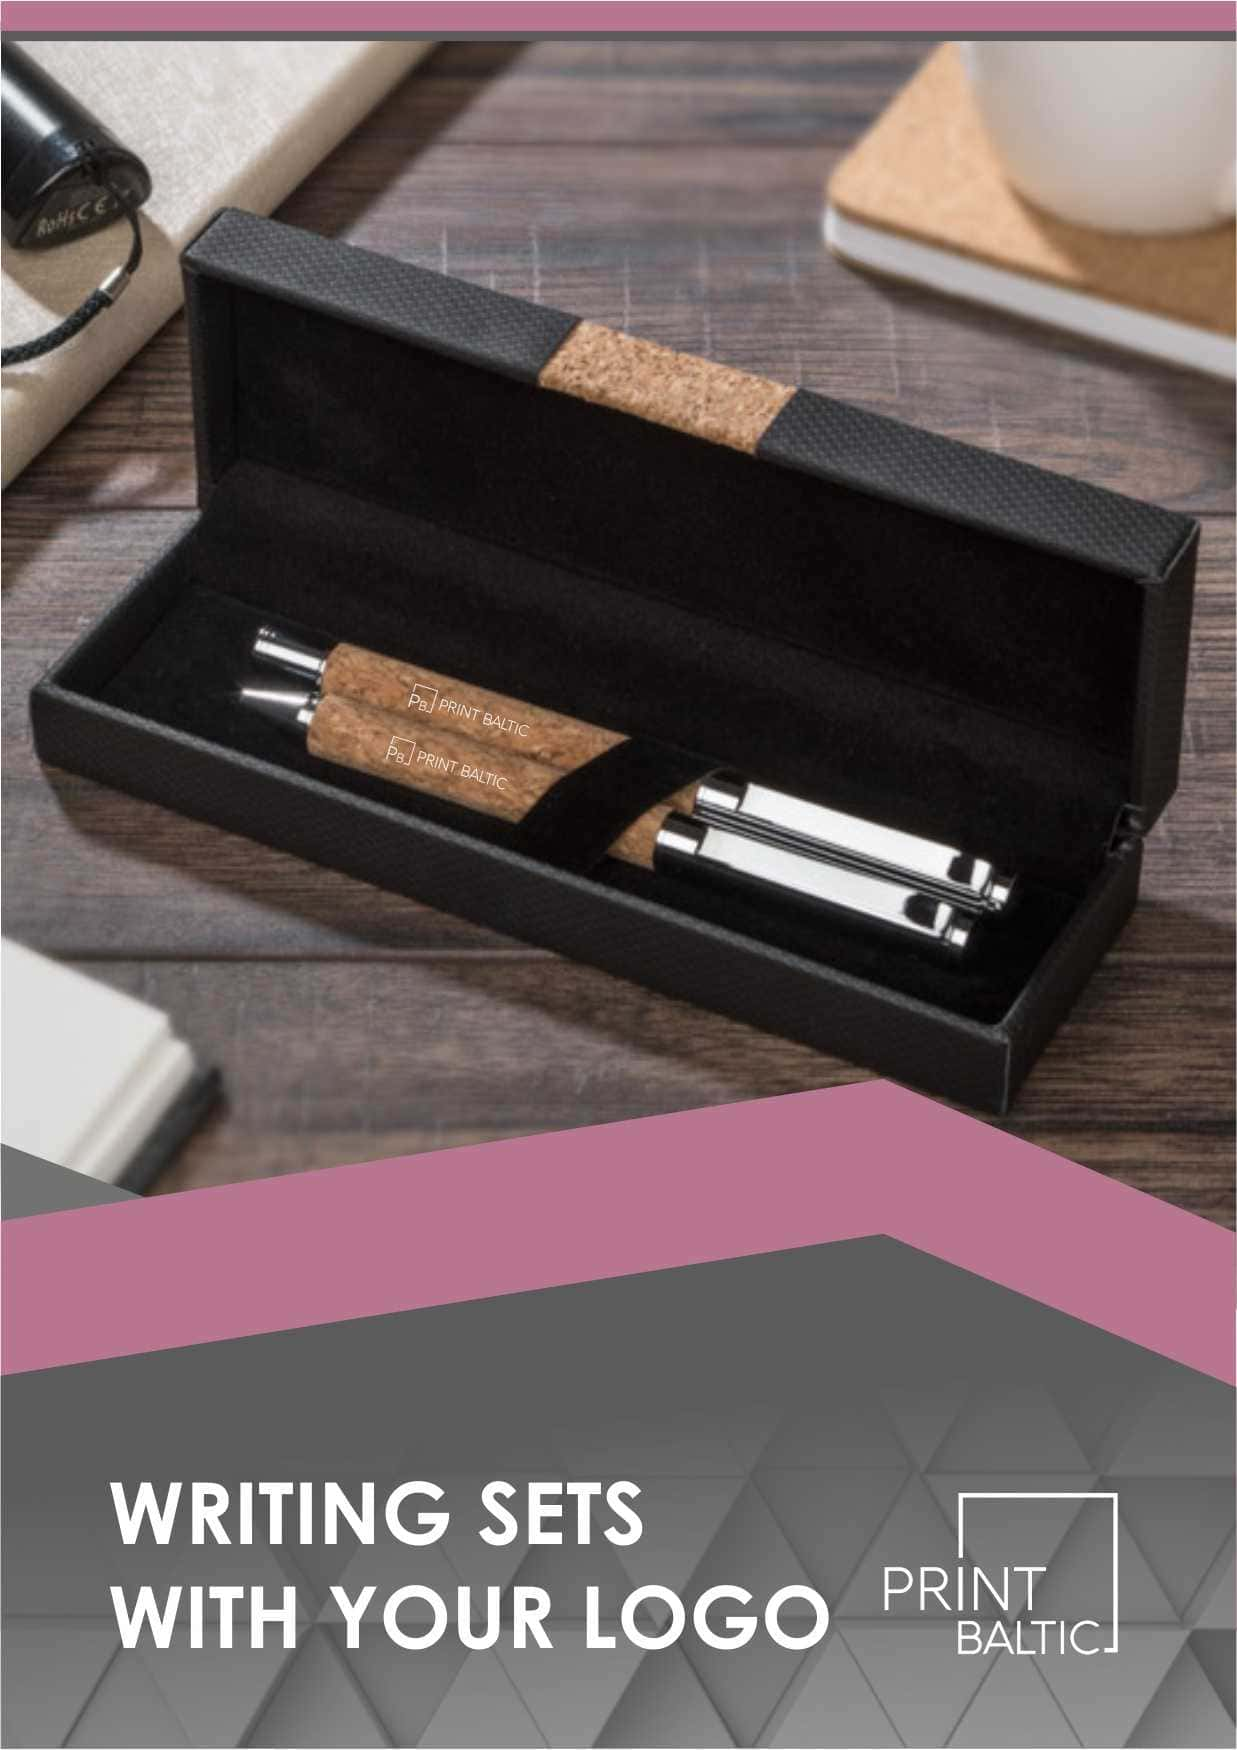 SETS OF WRITING ACCESSORIES